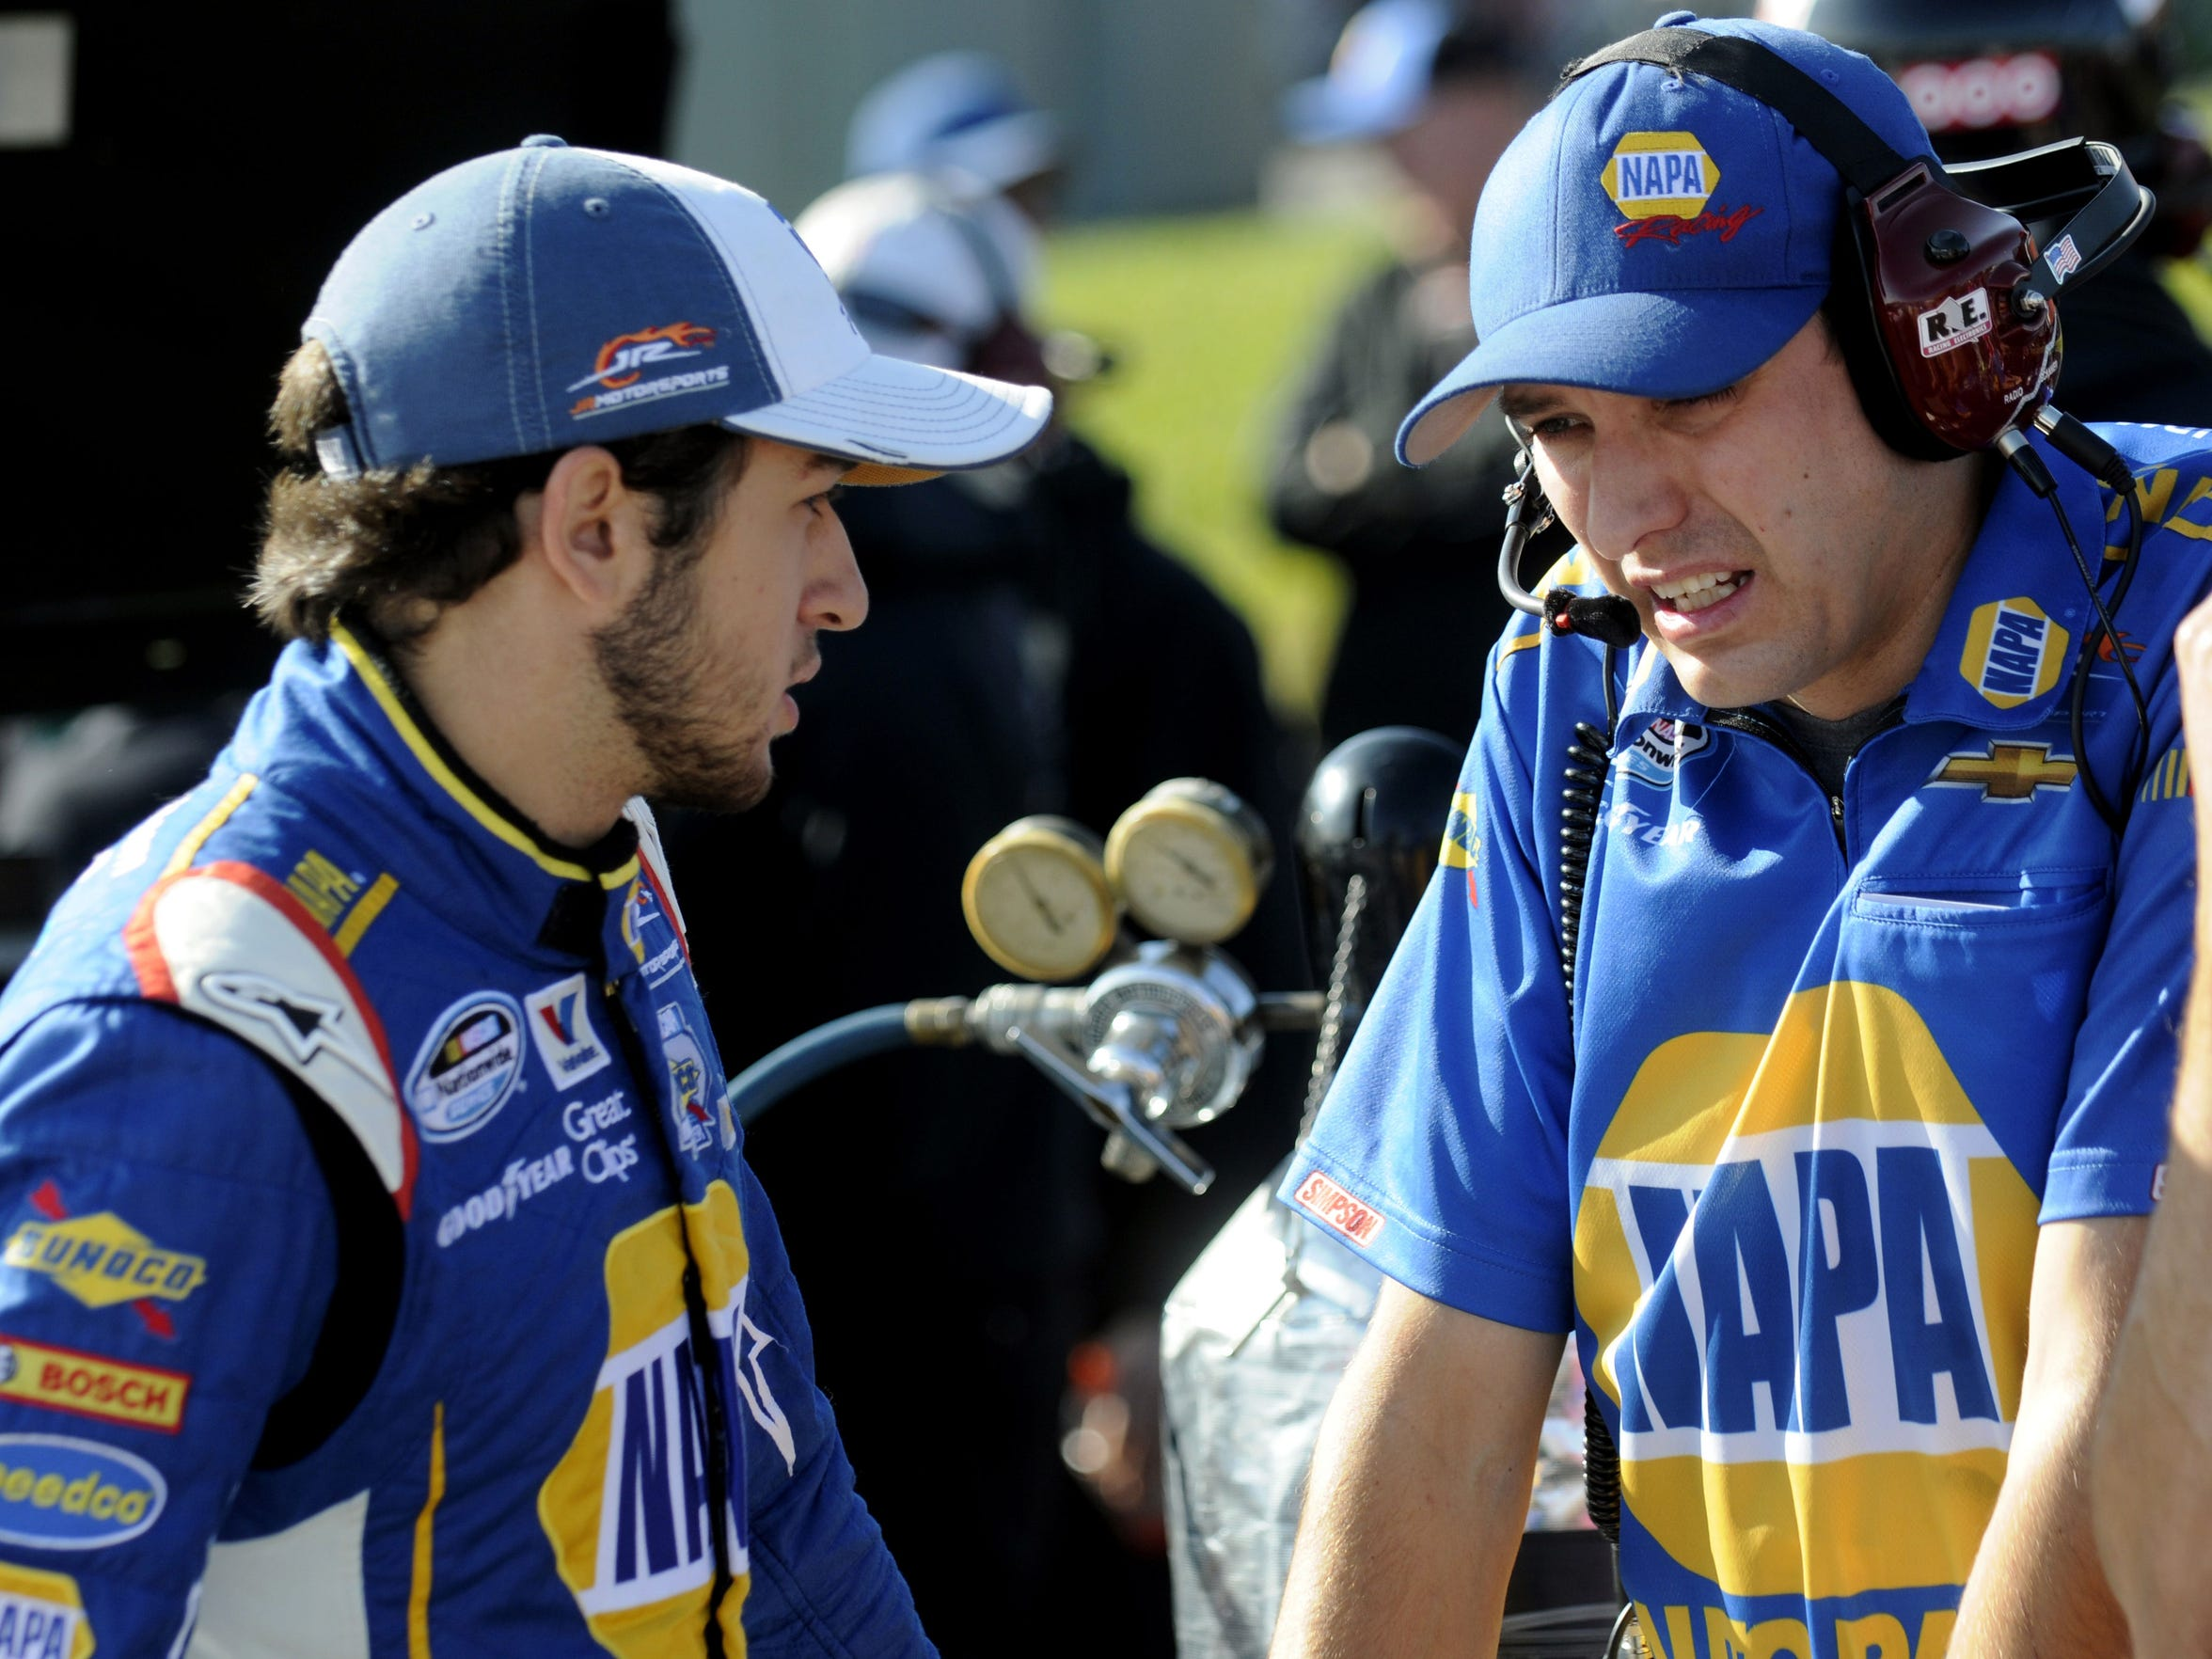 All eyes will be on the new Sprint Cup crew chiefs